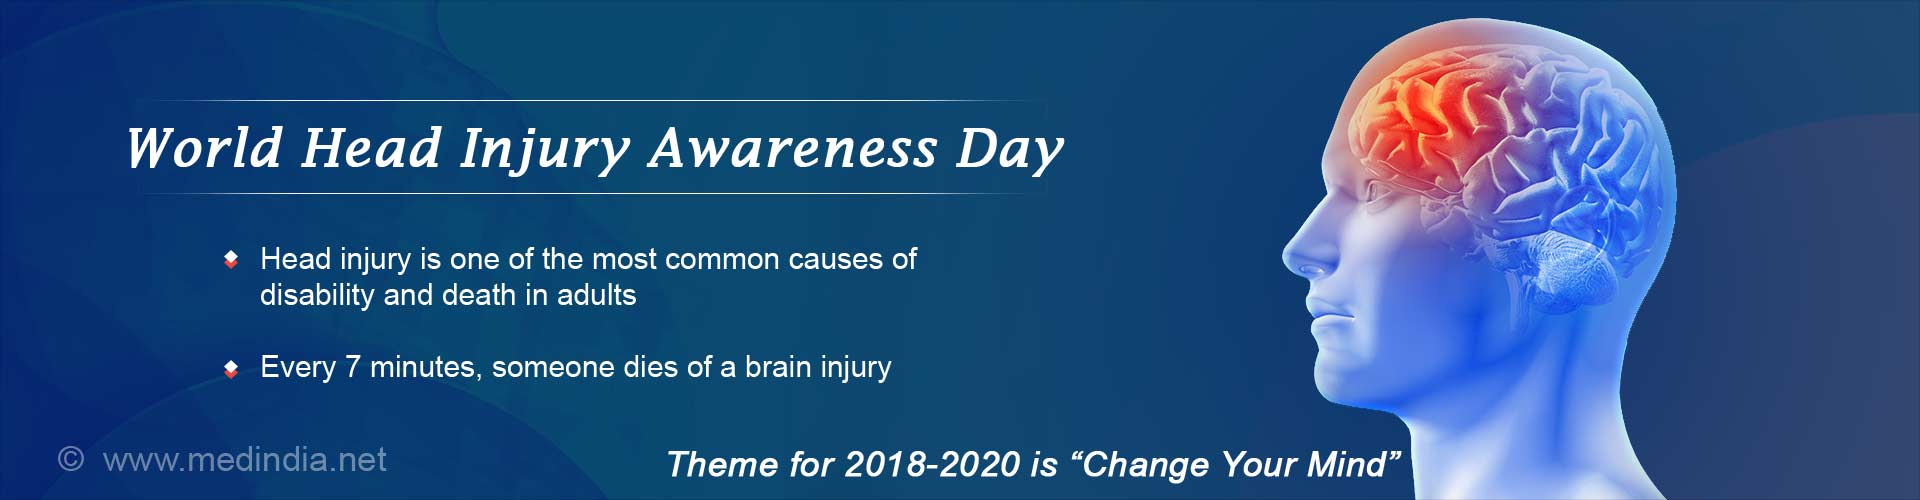 World Head Injury Awareness  Day